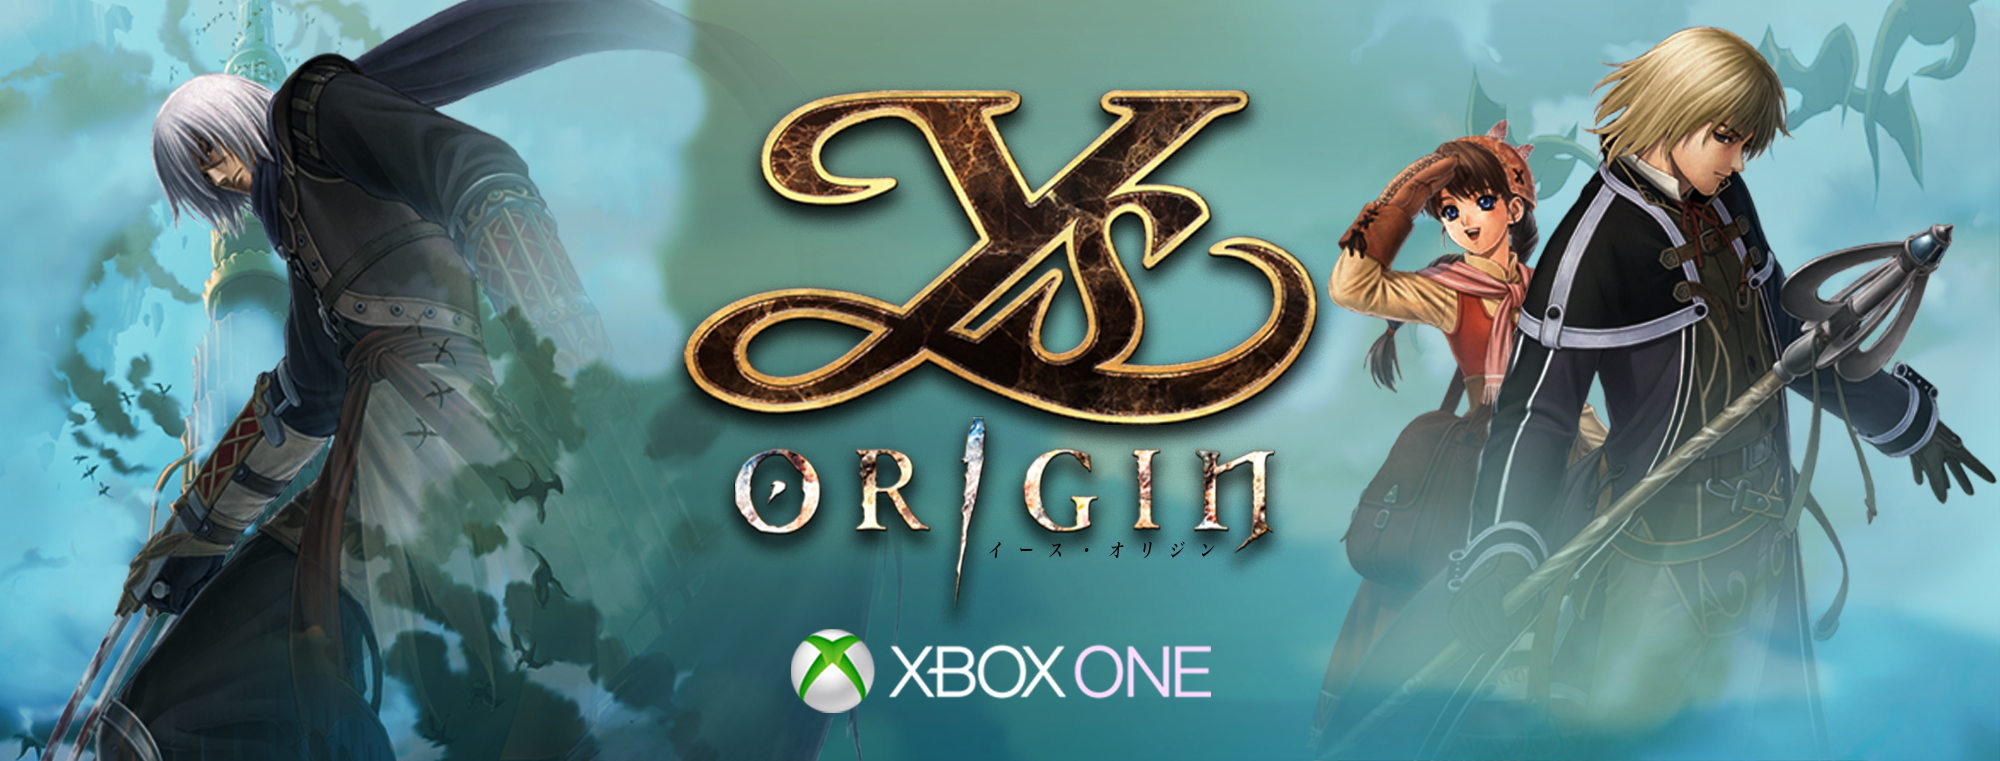 Ys Origin is now available on Xbox One!